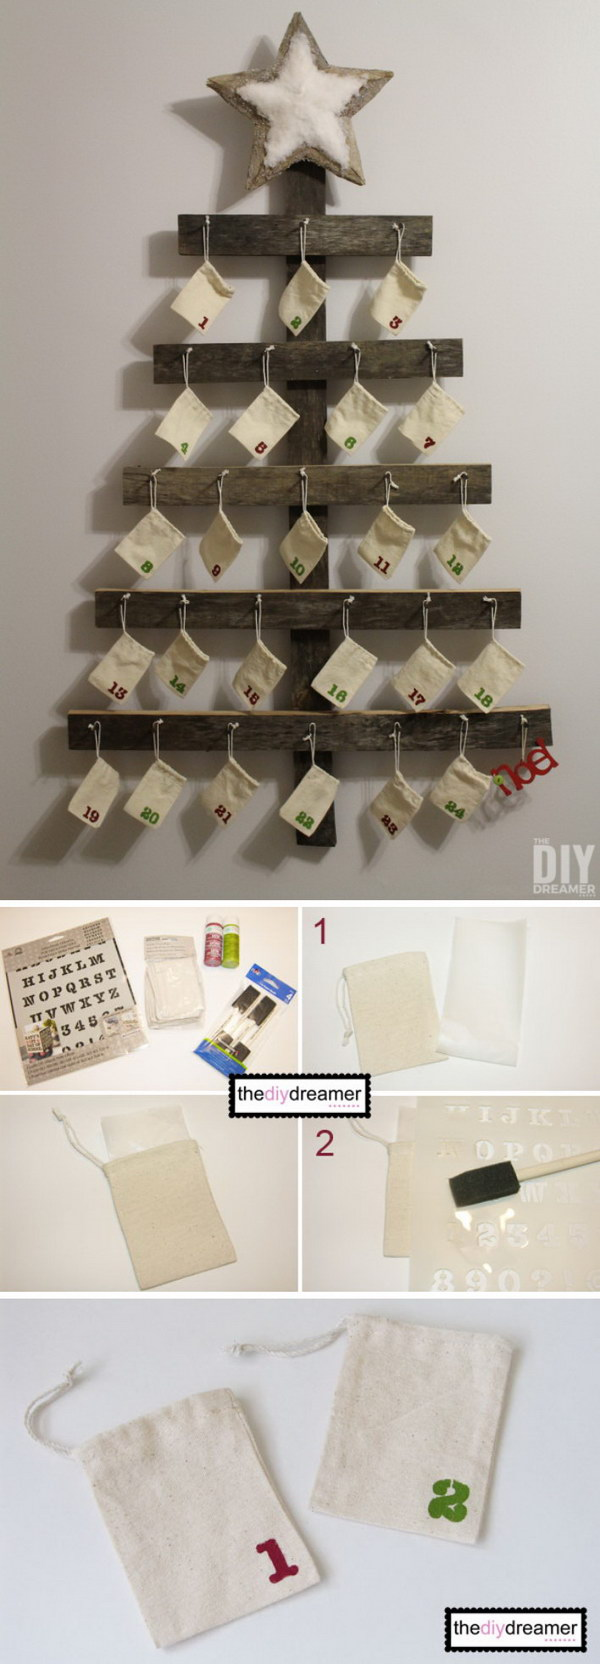 Diy Calendar Countdown : Diy christmas countdown calendar ideas tutorials